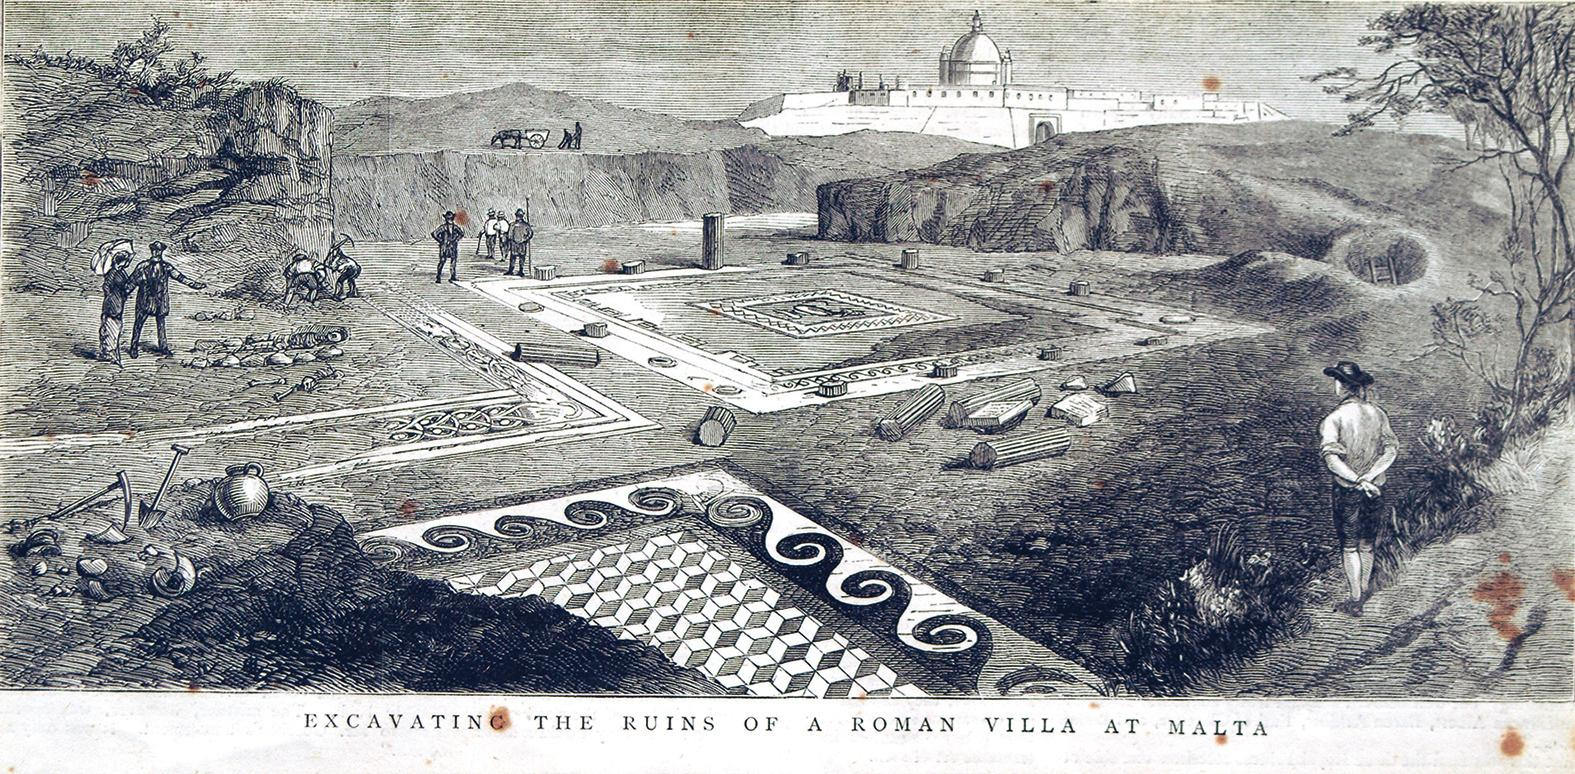 This incision depicting Antonio Annetto Caruana's excavation was published on the front page of the British weekly newspaper The Graphic on June 25, 1881.